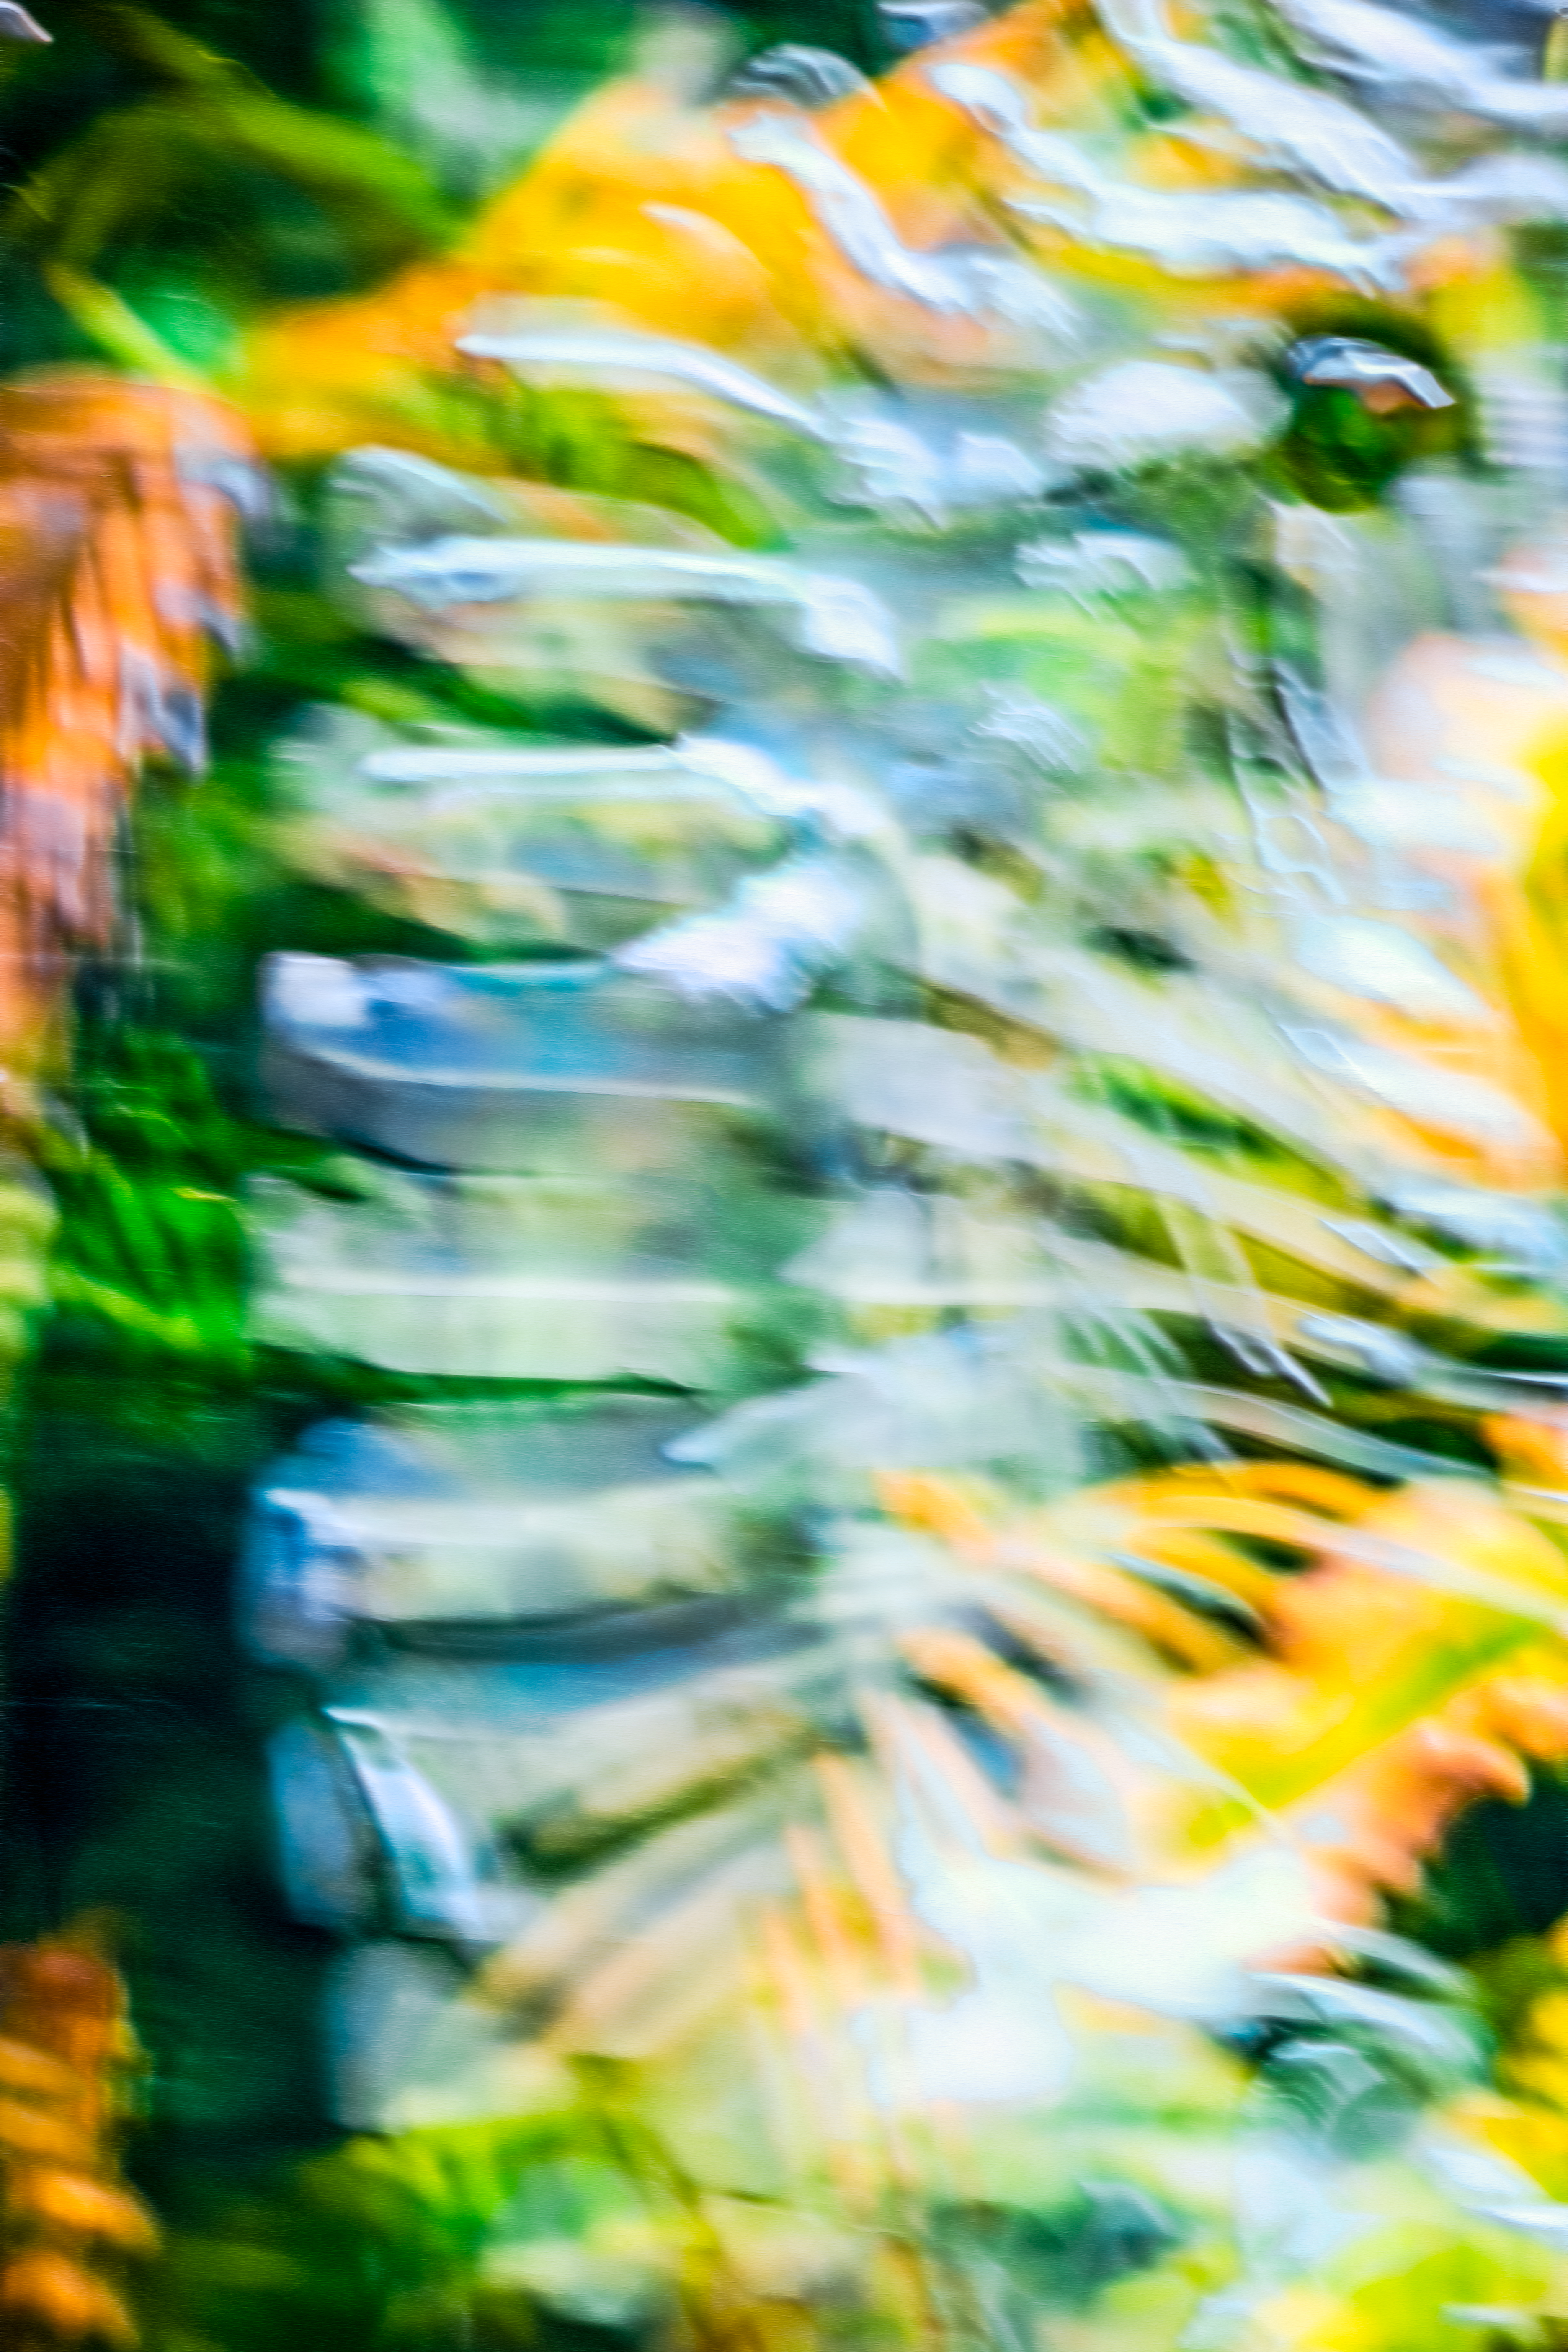 This photograph, Fragments and Divisions, melds the energies of botanical and zoological life forms.